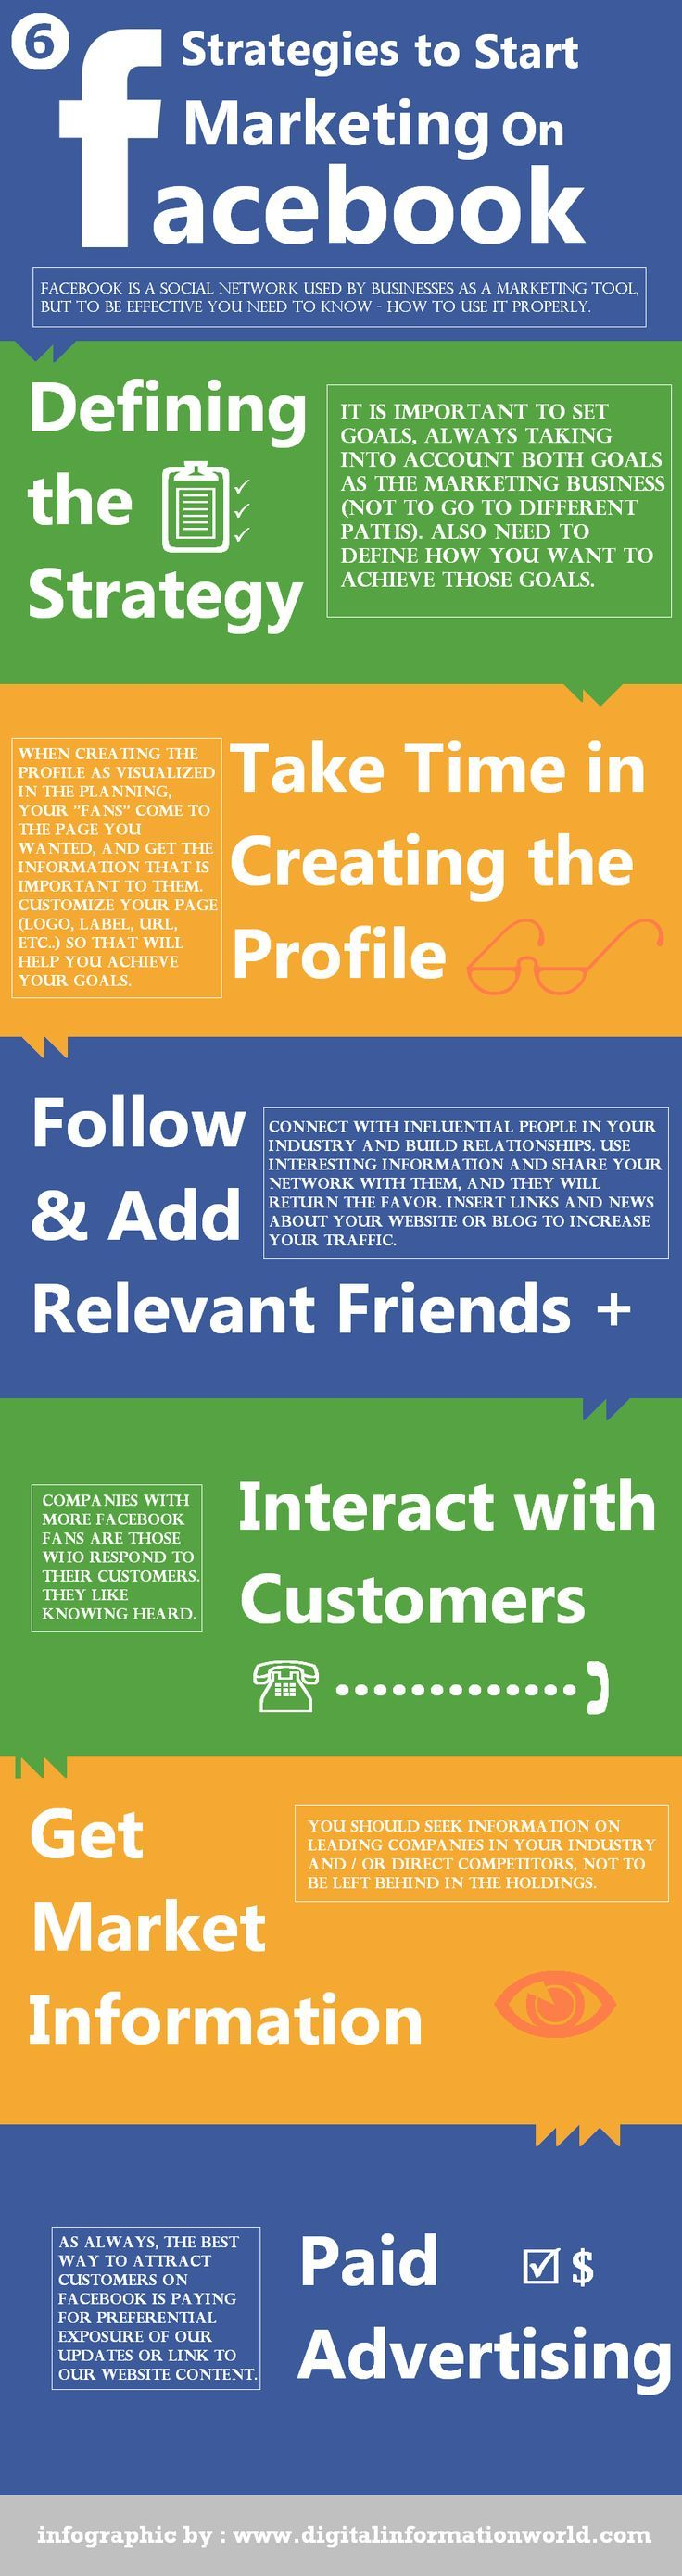 6 Strategies to Start Marketing on Facebook [Infographic] | By: Digital Information World, via Bit Rebels - Shared on #Pinterest by @BornToBeSocial, #France